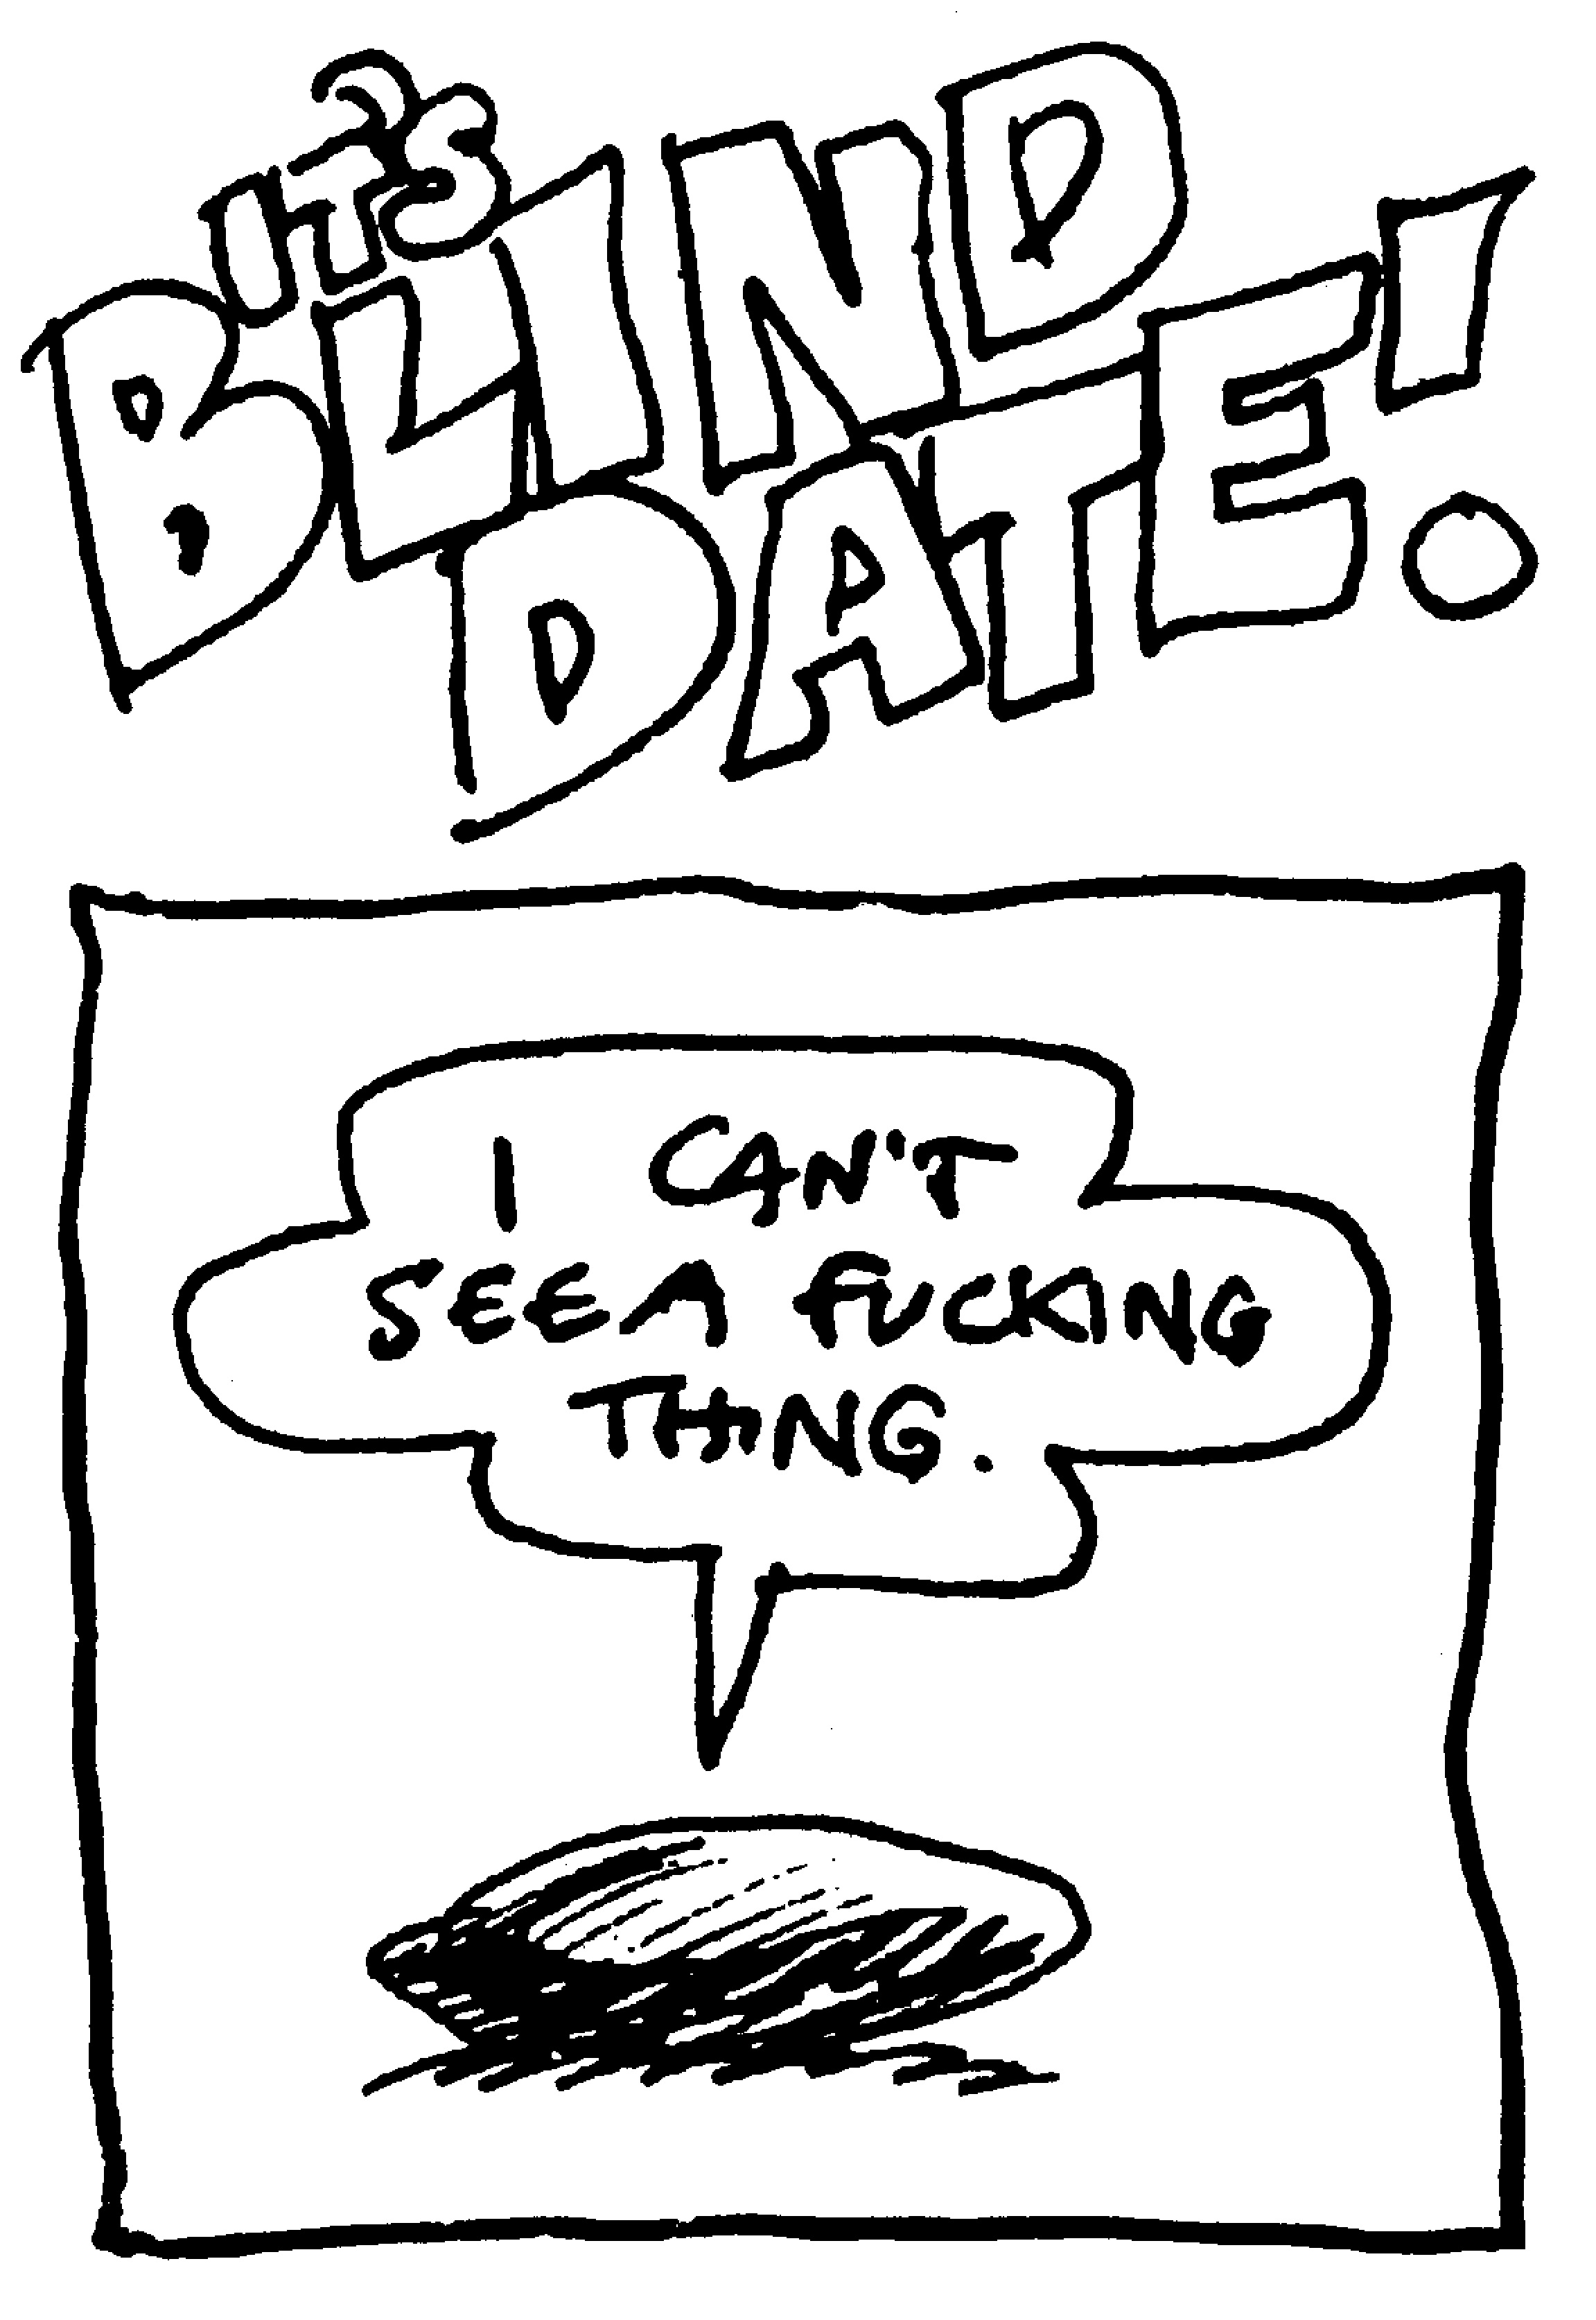 Blind dating funny one-liners